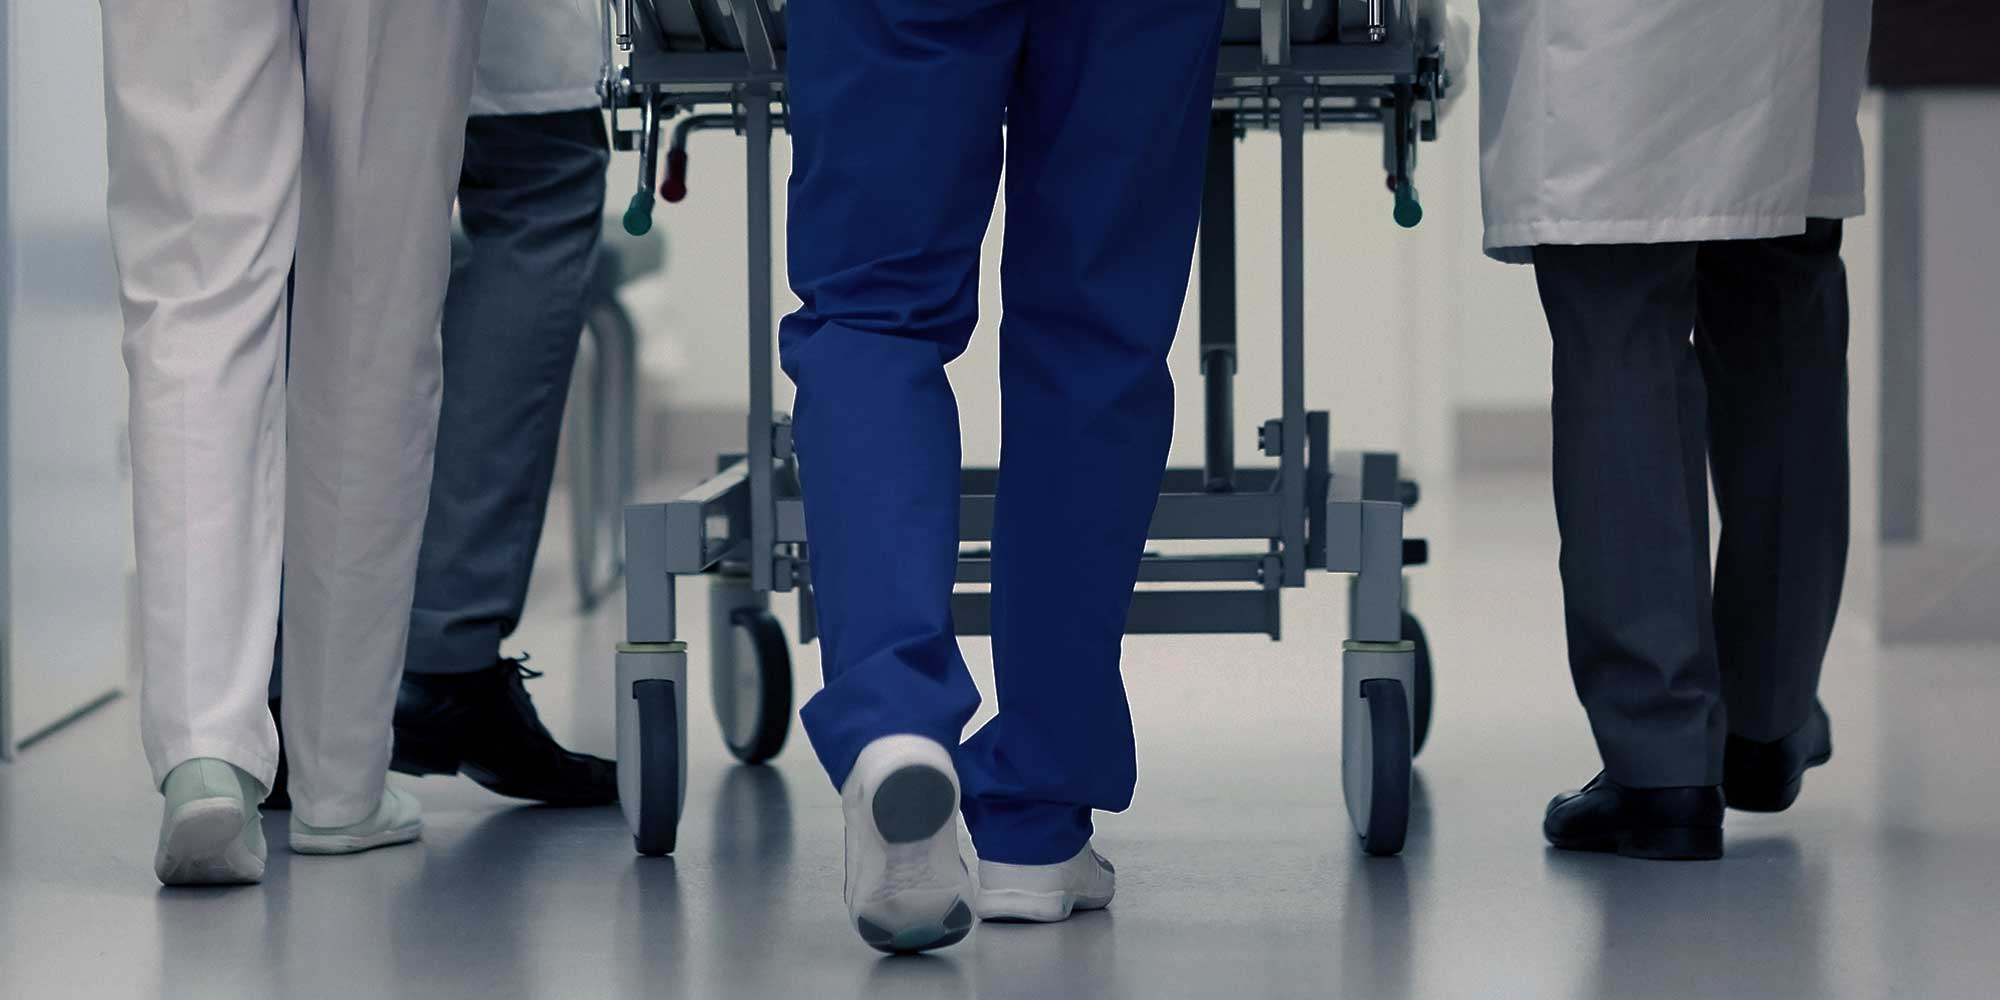 patient on a hospital trolly